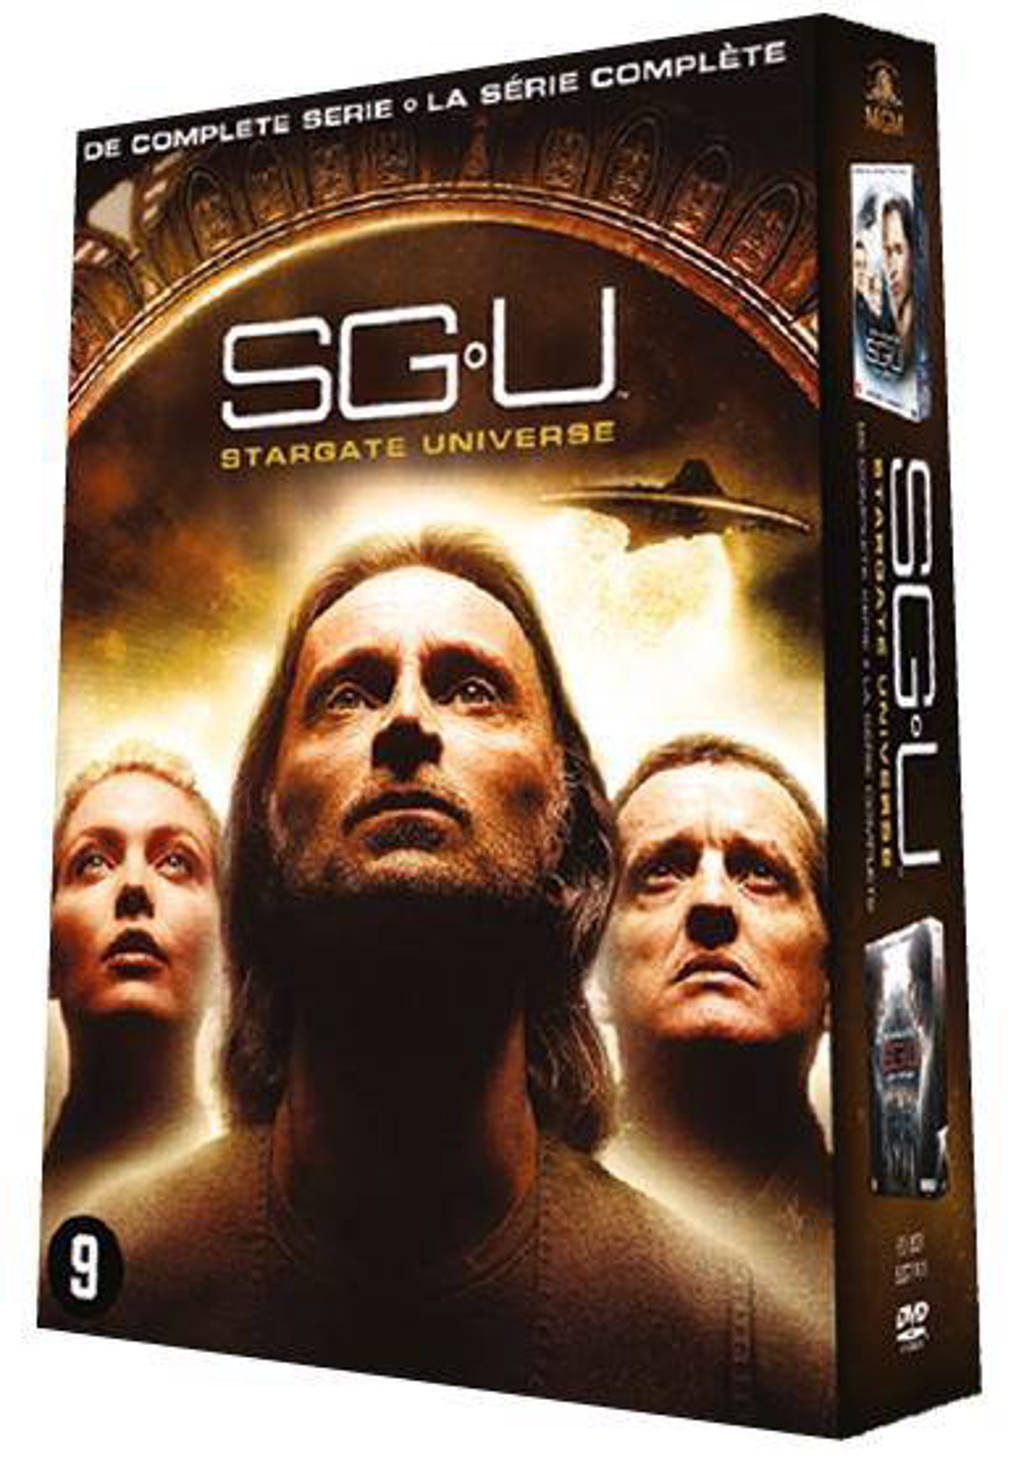 Stargate universe - Complete collection (DVD)